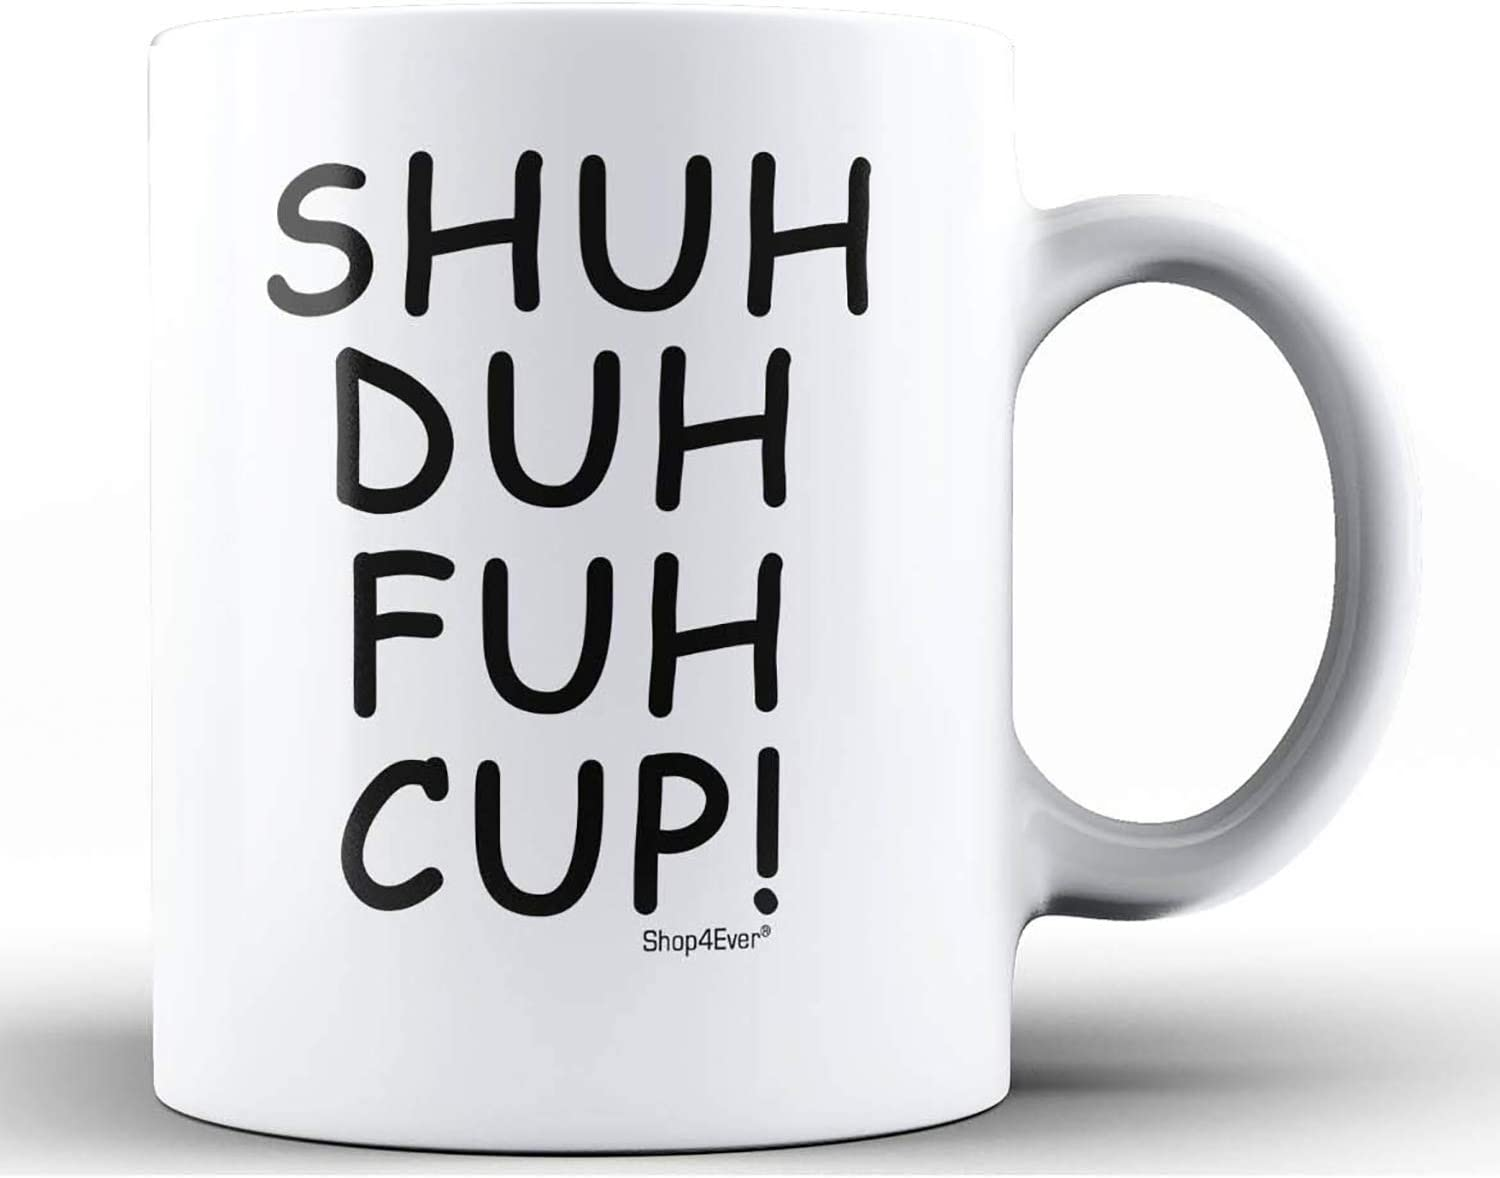 Shop4Ever Funny Coffee Mug ~ Shuh Duh Fuh Cup! Novelty Ceramic Coffee Mug Tea Cup ~ Funny Gift For Coworker Bestfriend Coffee Lover ~ (11 oz.)